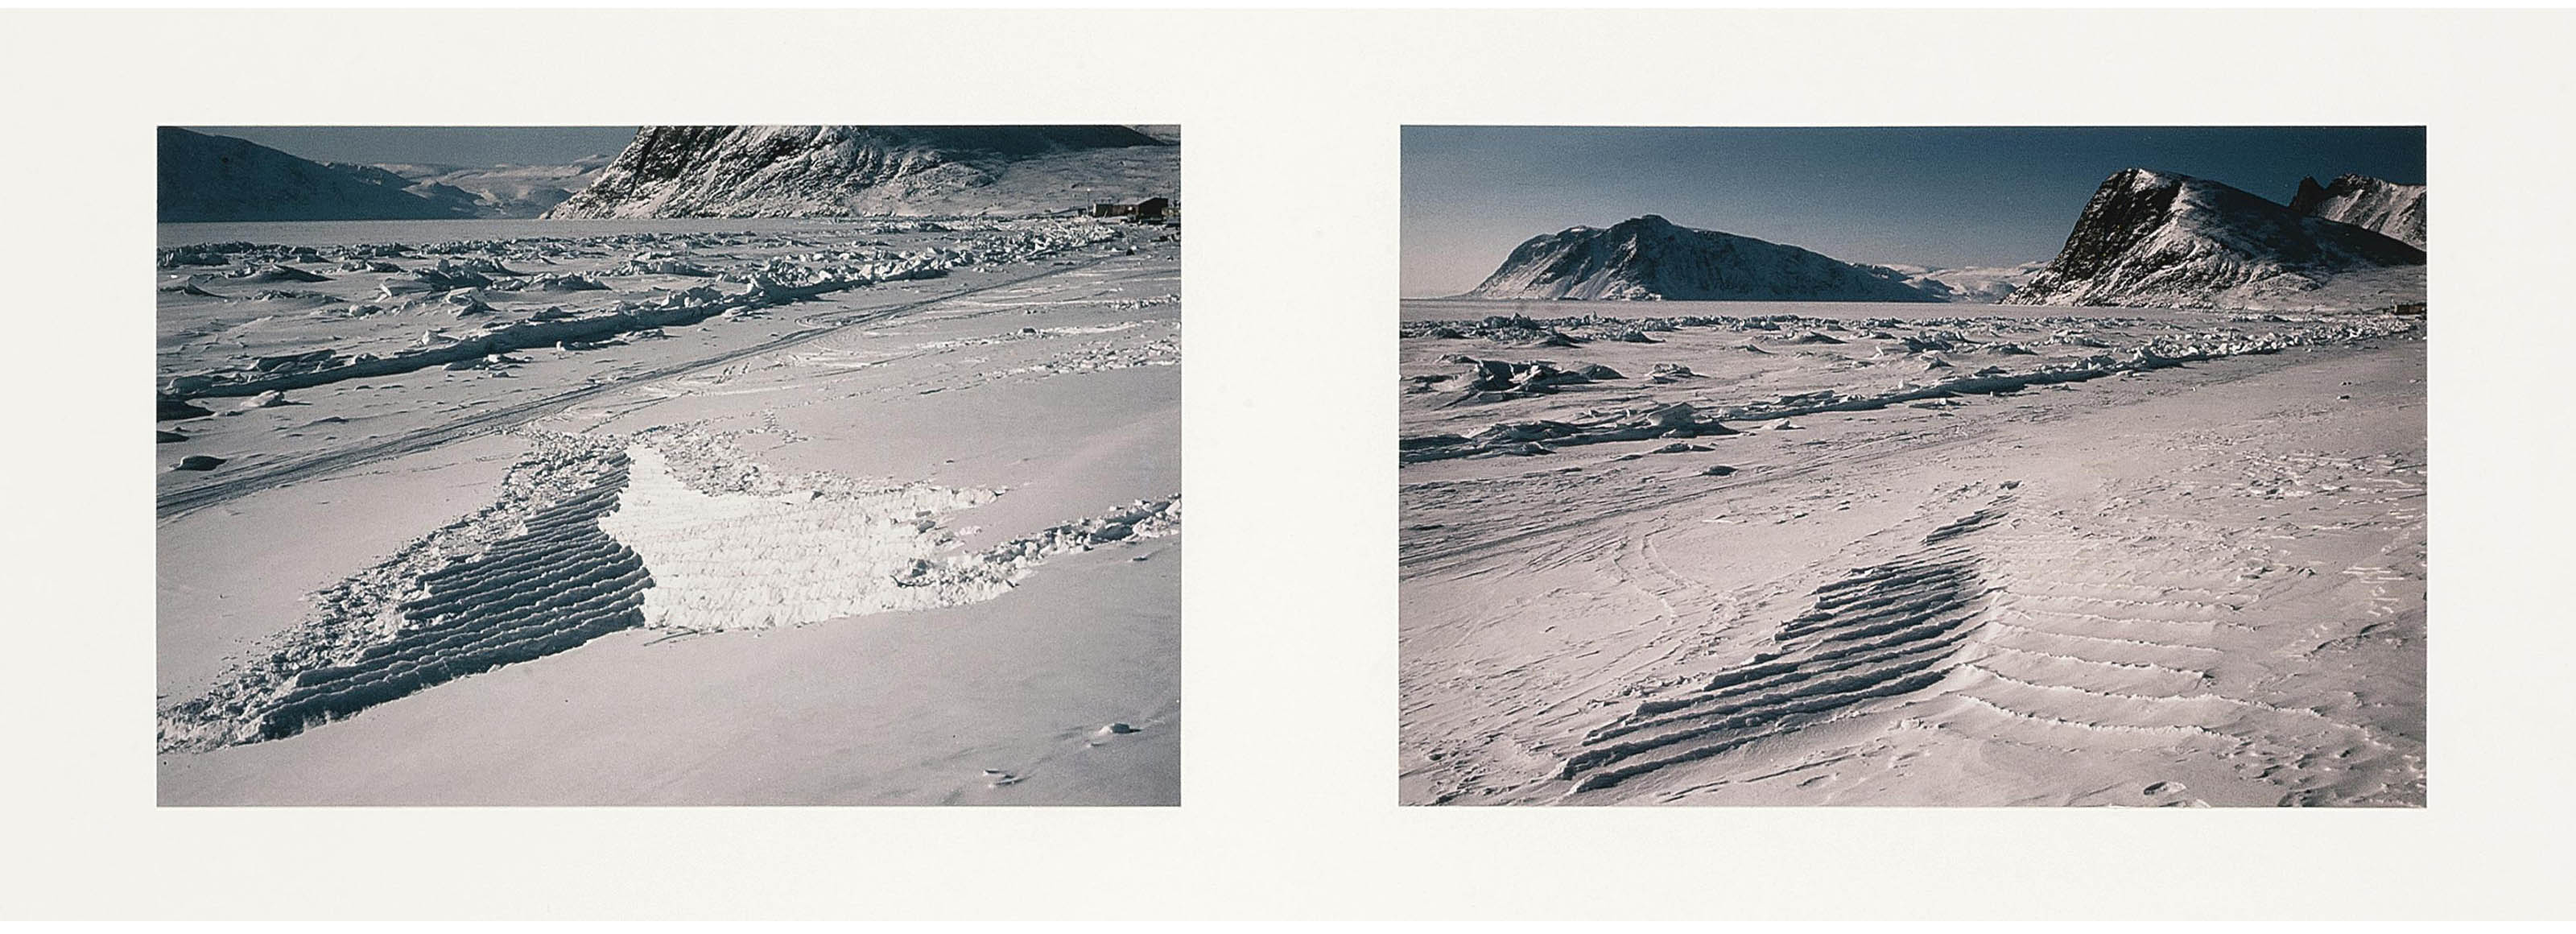 Soft snow/brought to an edge/hand packed/froze hard/remaining until winds came/covered by drifting snow, Grise Fjord, Ellesmere Island, 11, 12 April 1989